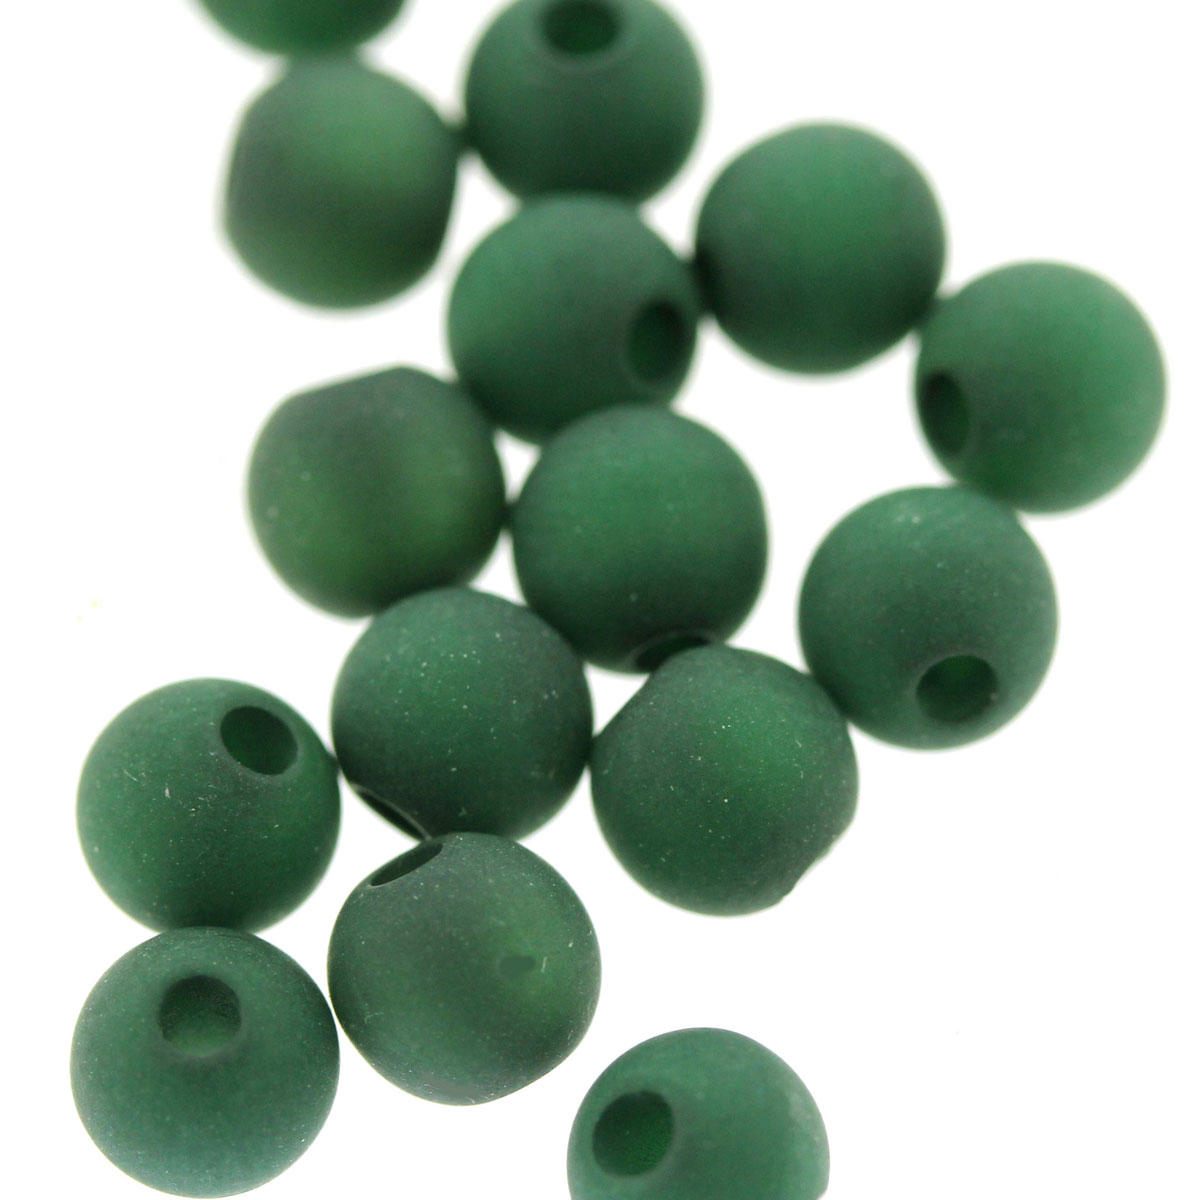 Emerald Green 6mm Polaris Bead